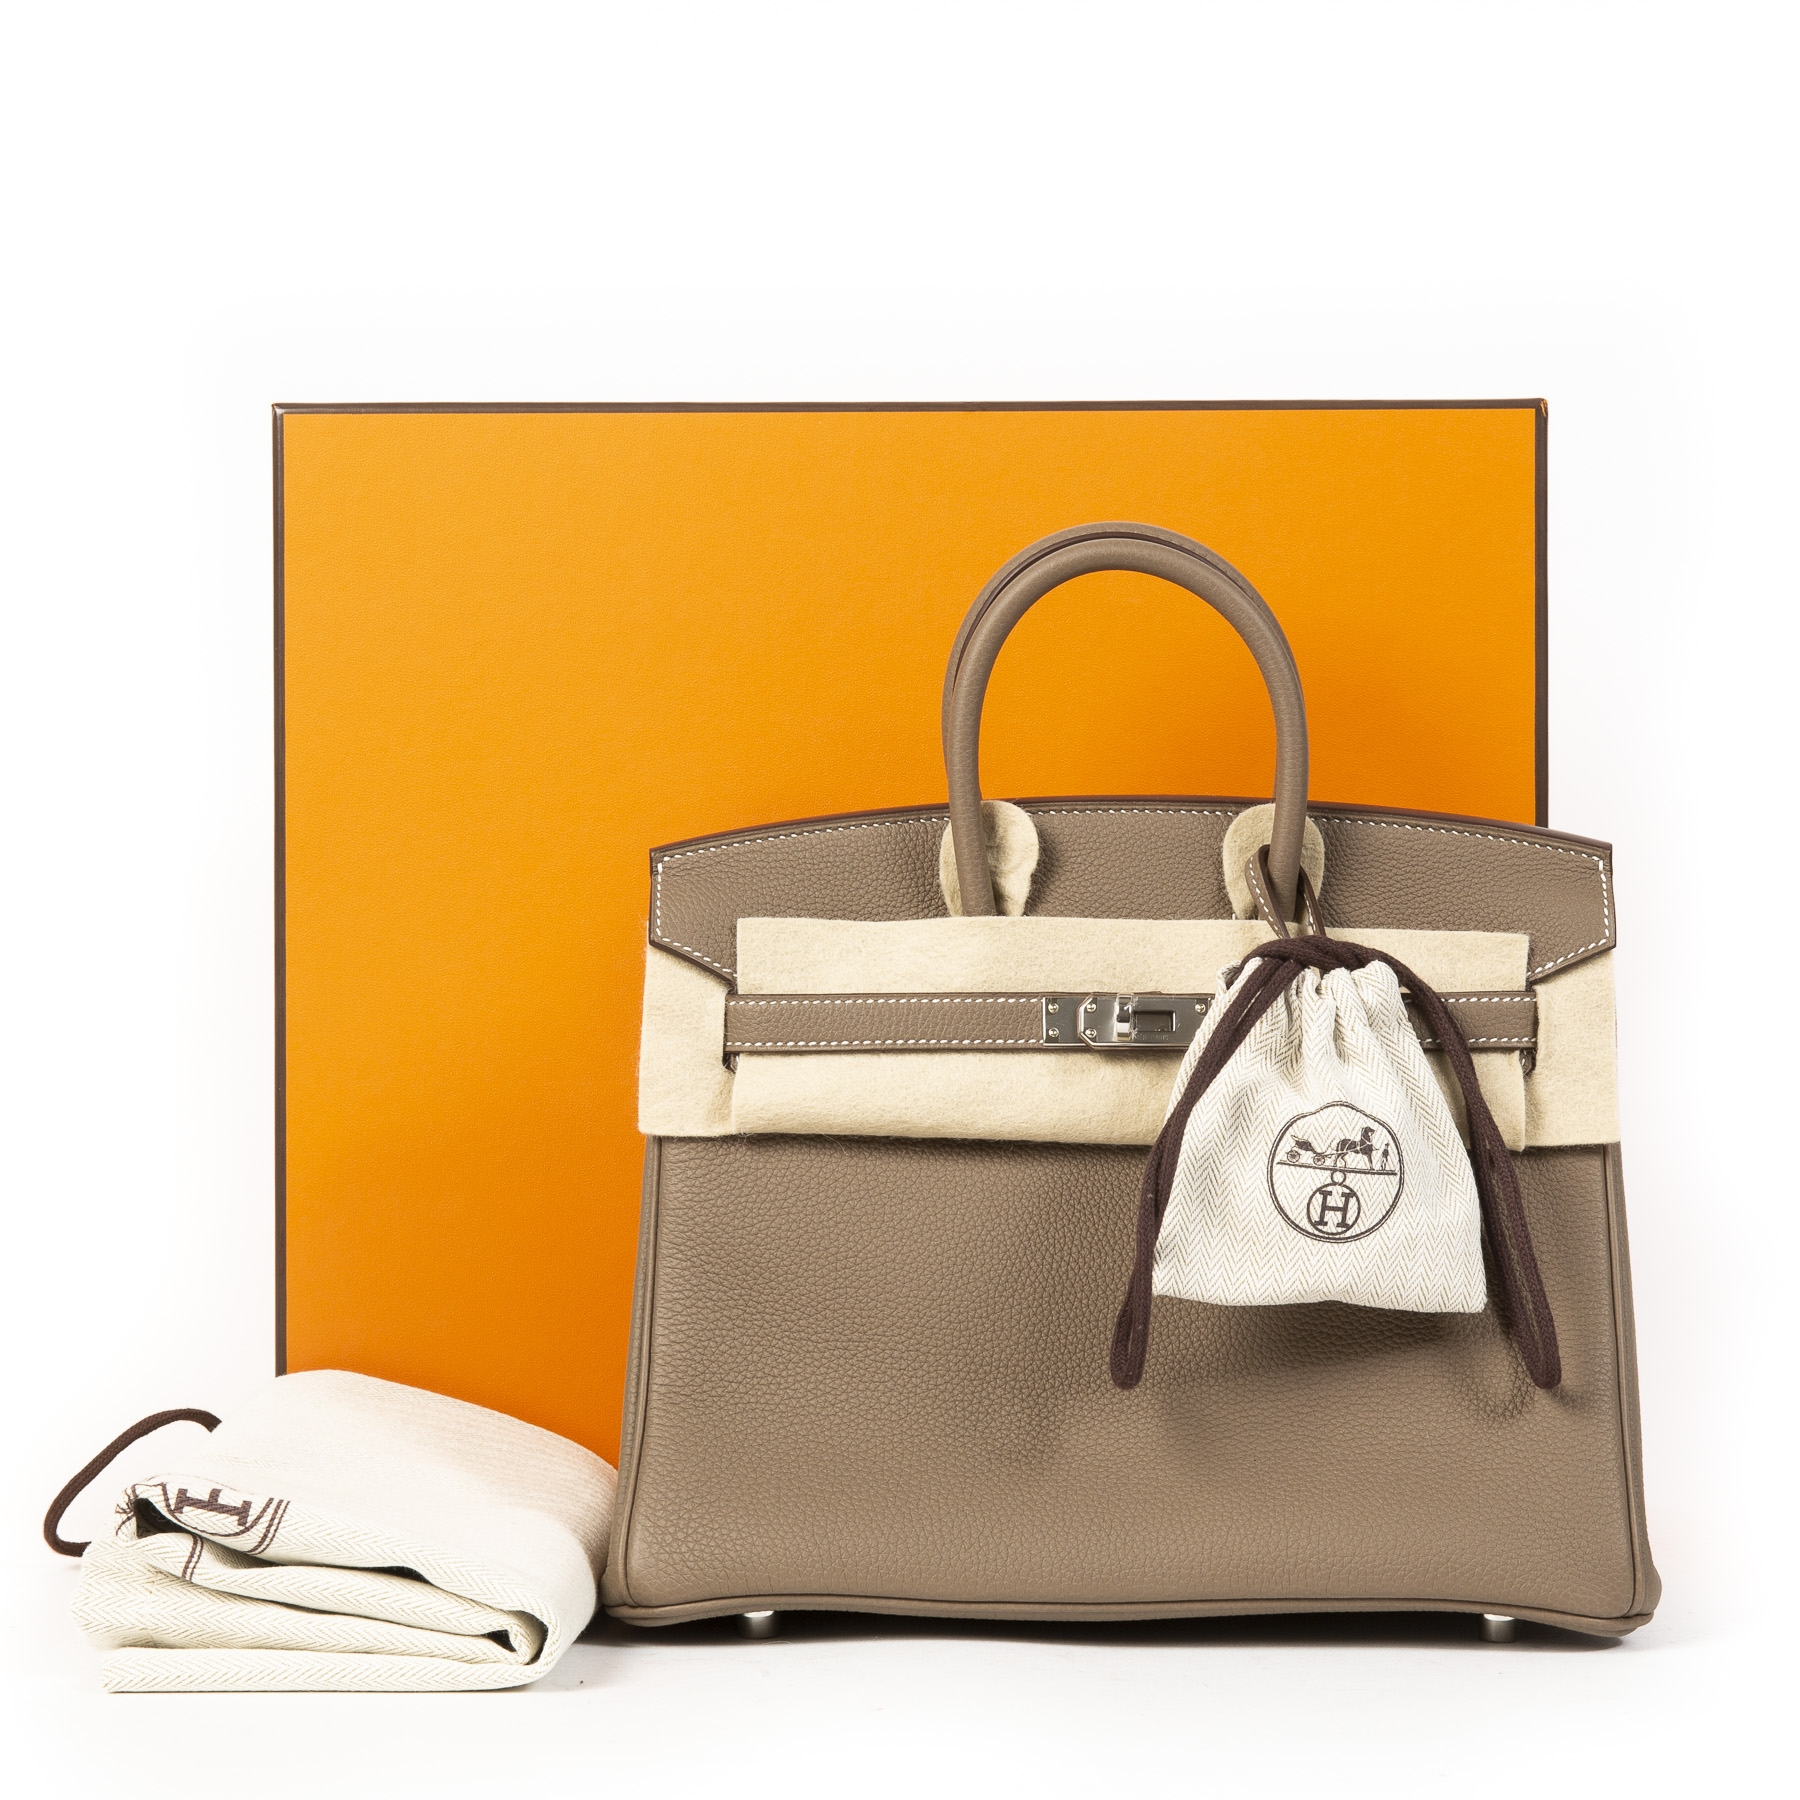 Buy and sell brand new hermes birkin bags in belgium at labellov showroom